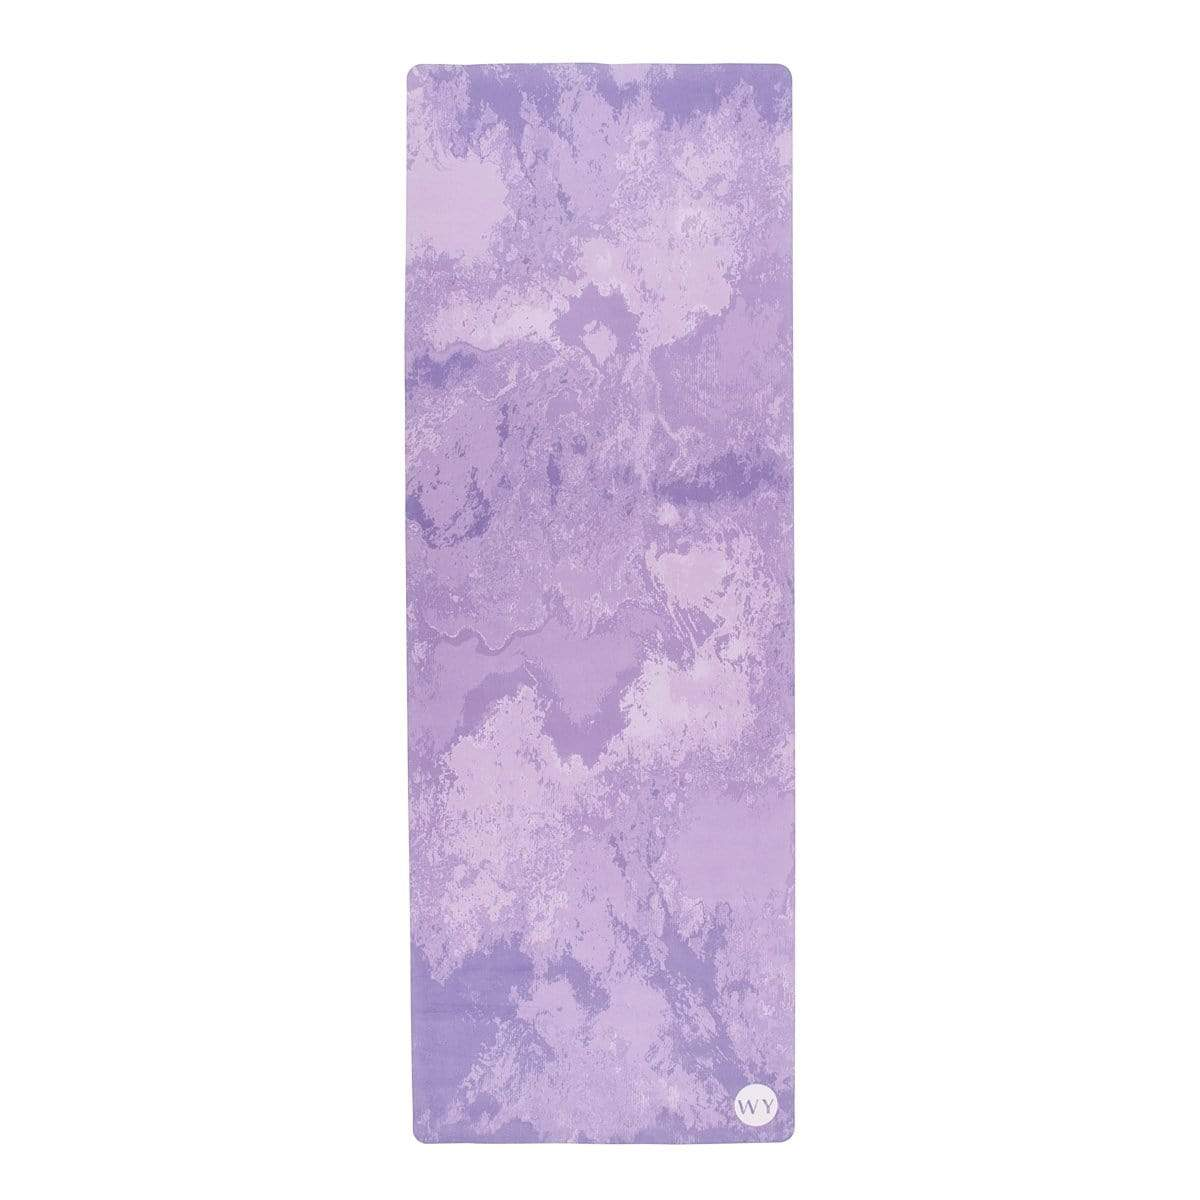 Luxury Yoga Mat Amethyst | Luxury Yoga Mat Luxya Singapore